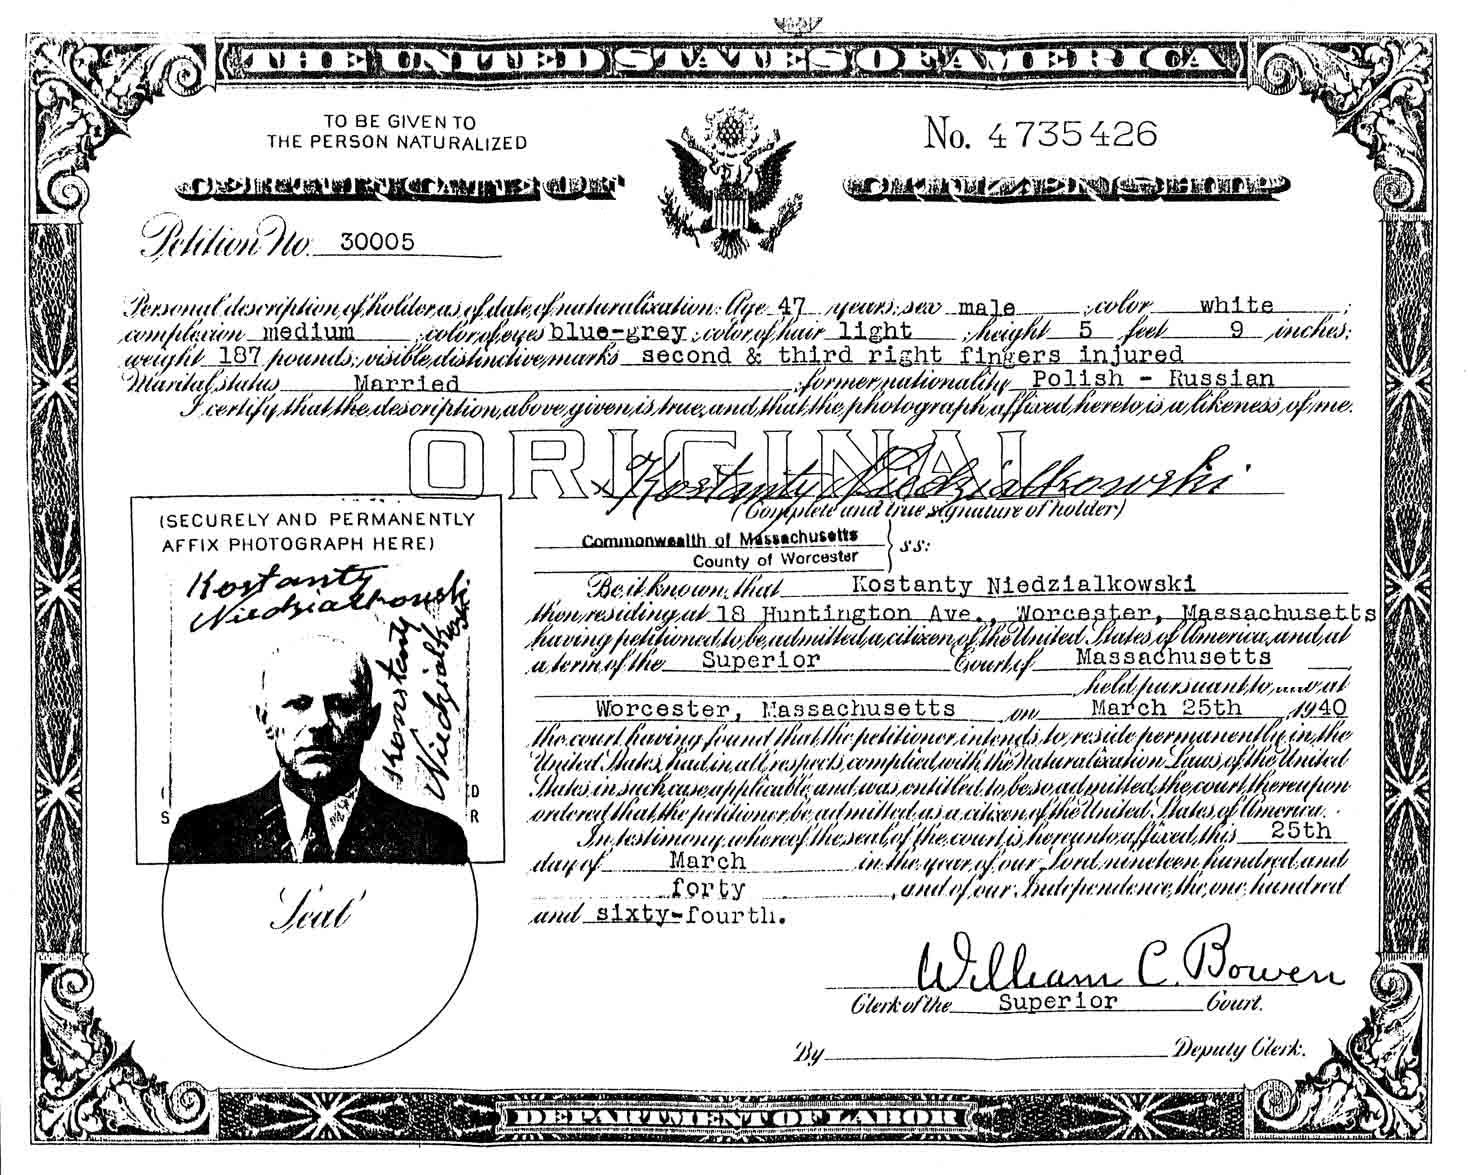 Certificates of citizenship steves genealogy blog kostanty niedzialkowskis certificate of naturalization xflitez Image collections